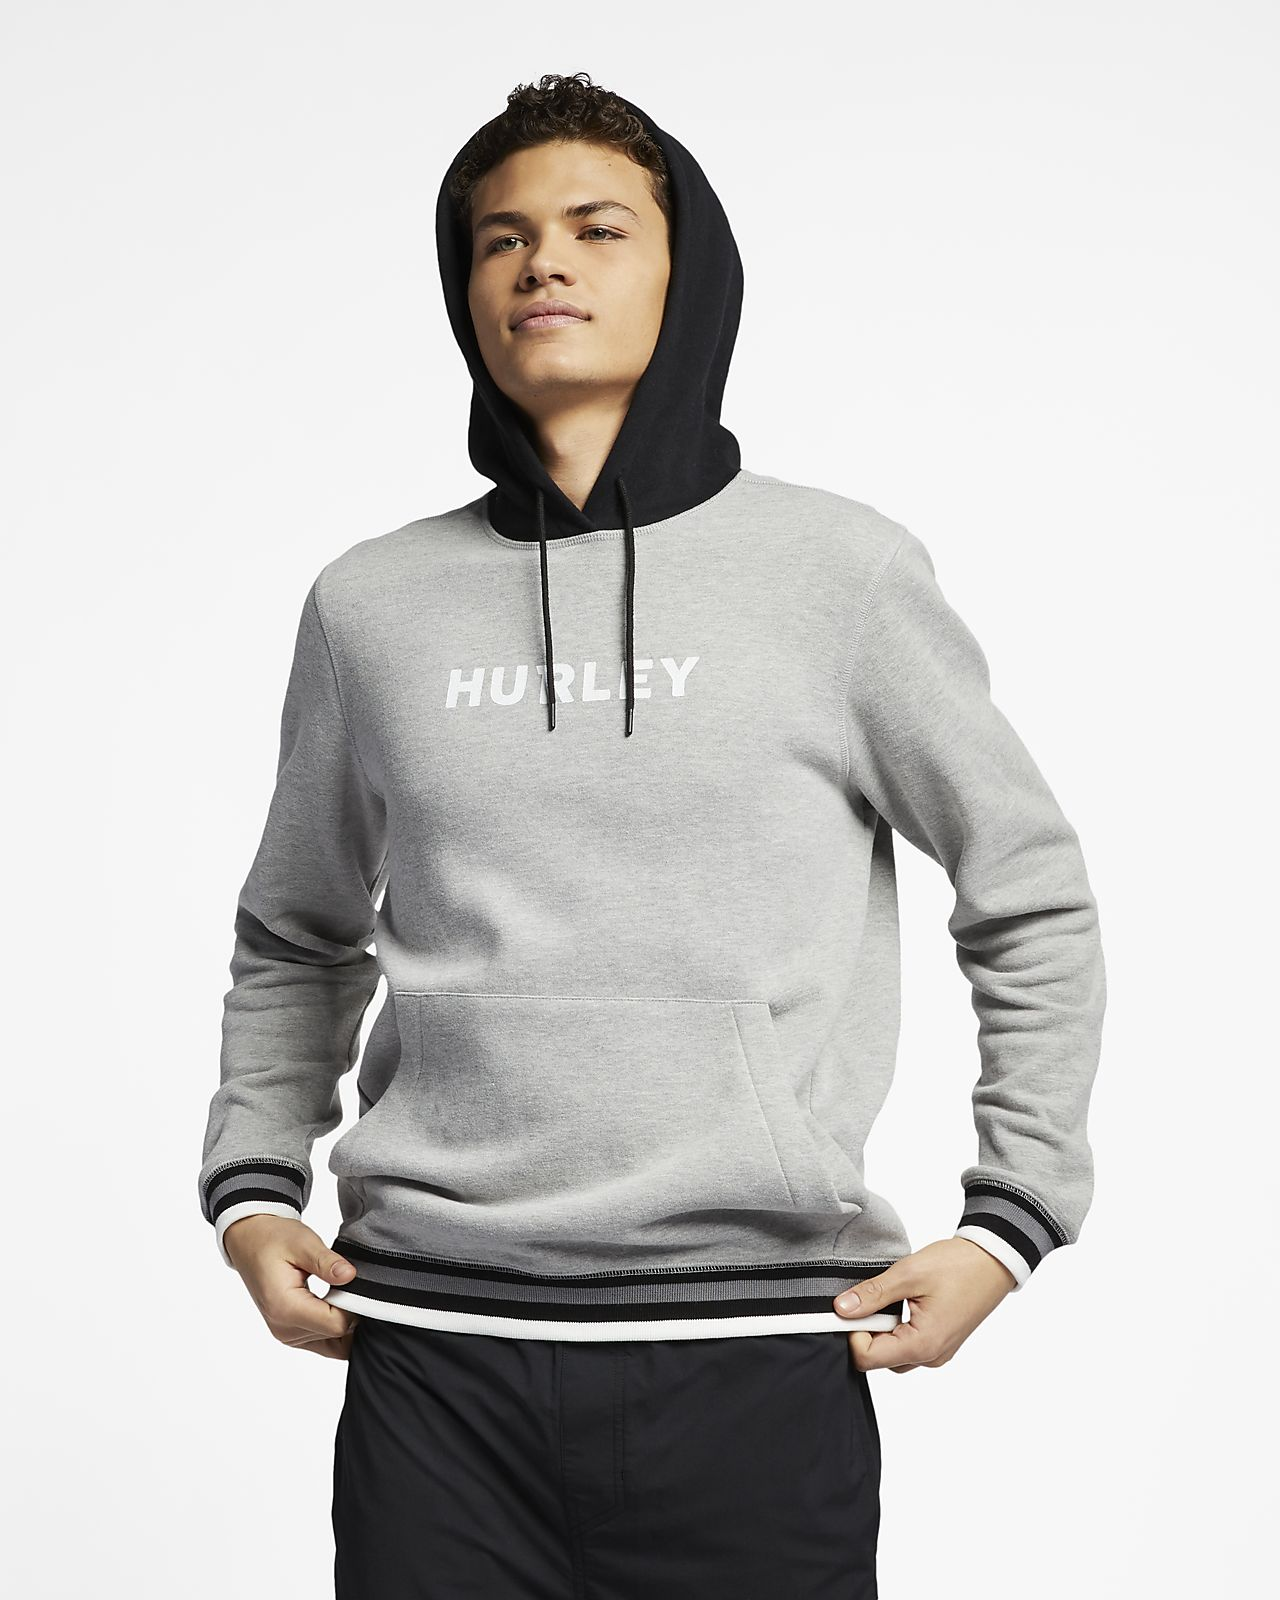 Hurley East Coast Fleece-Hoodie für Herren